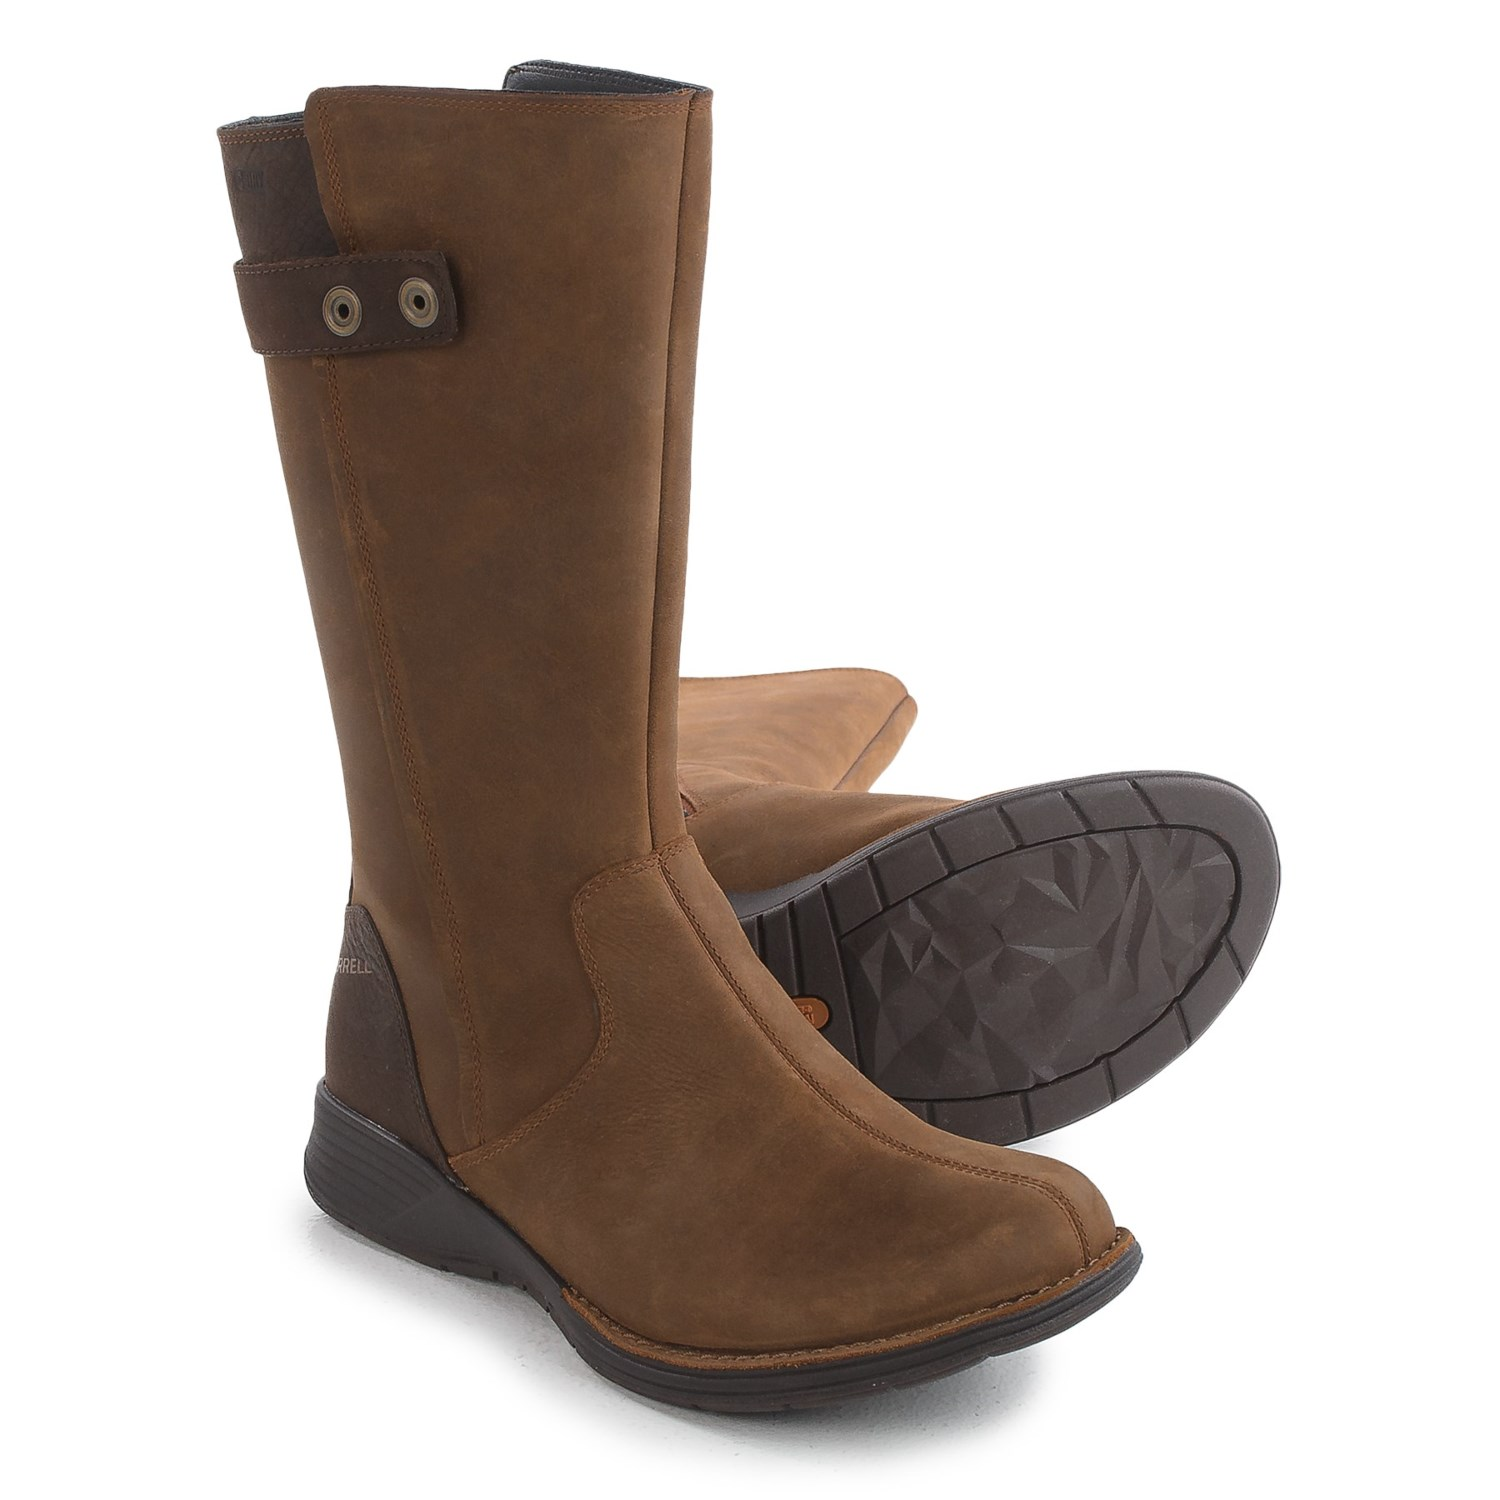 Women's Rain Boots: Average savings of 52% at Sierra Trading Post